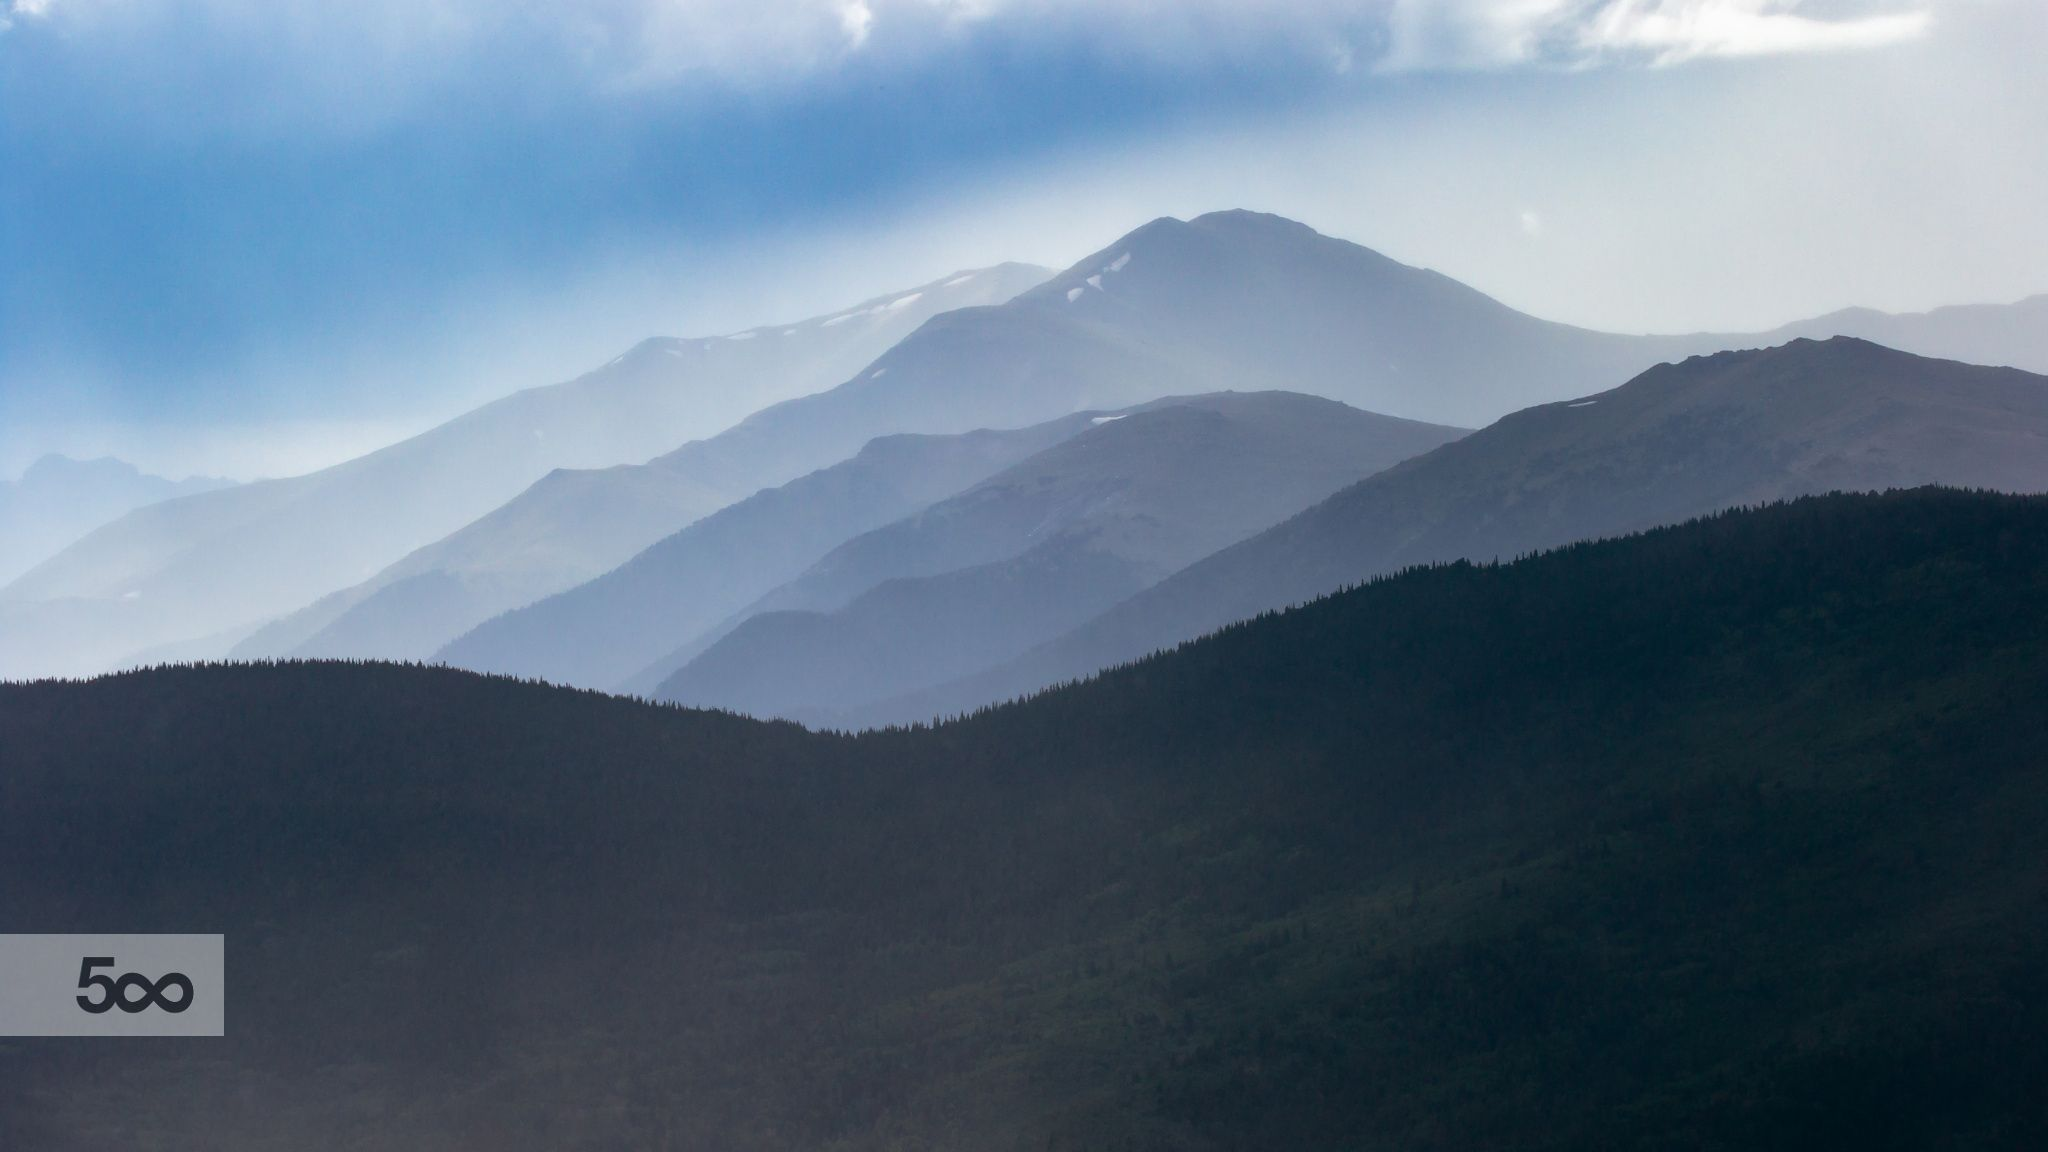 Mountains in the Mist by Chris McNeill on 500px